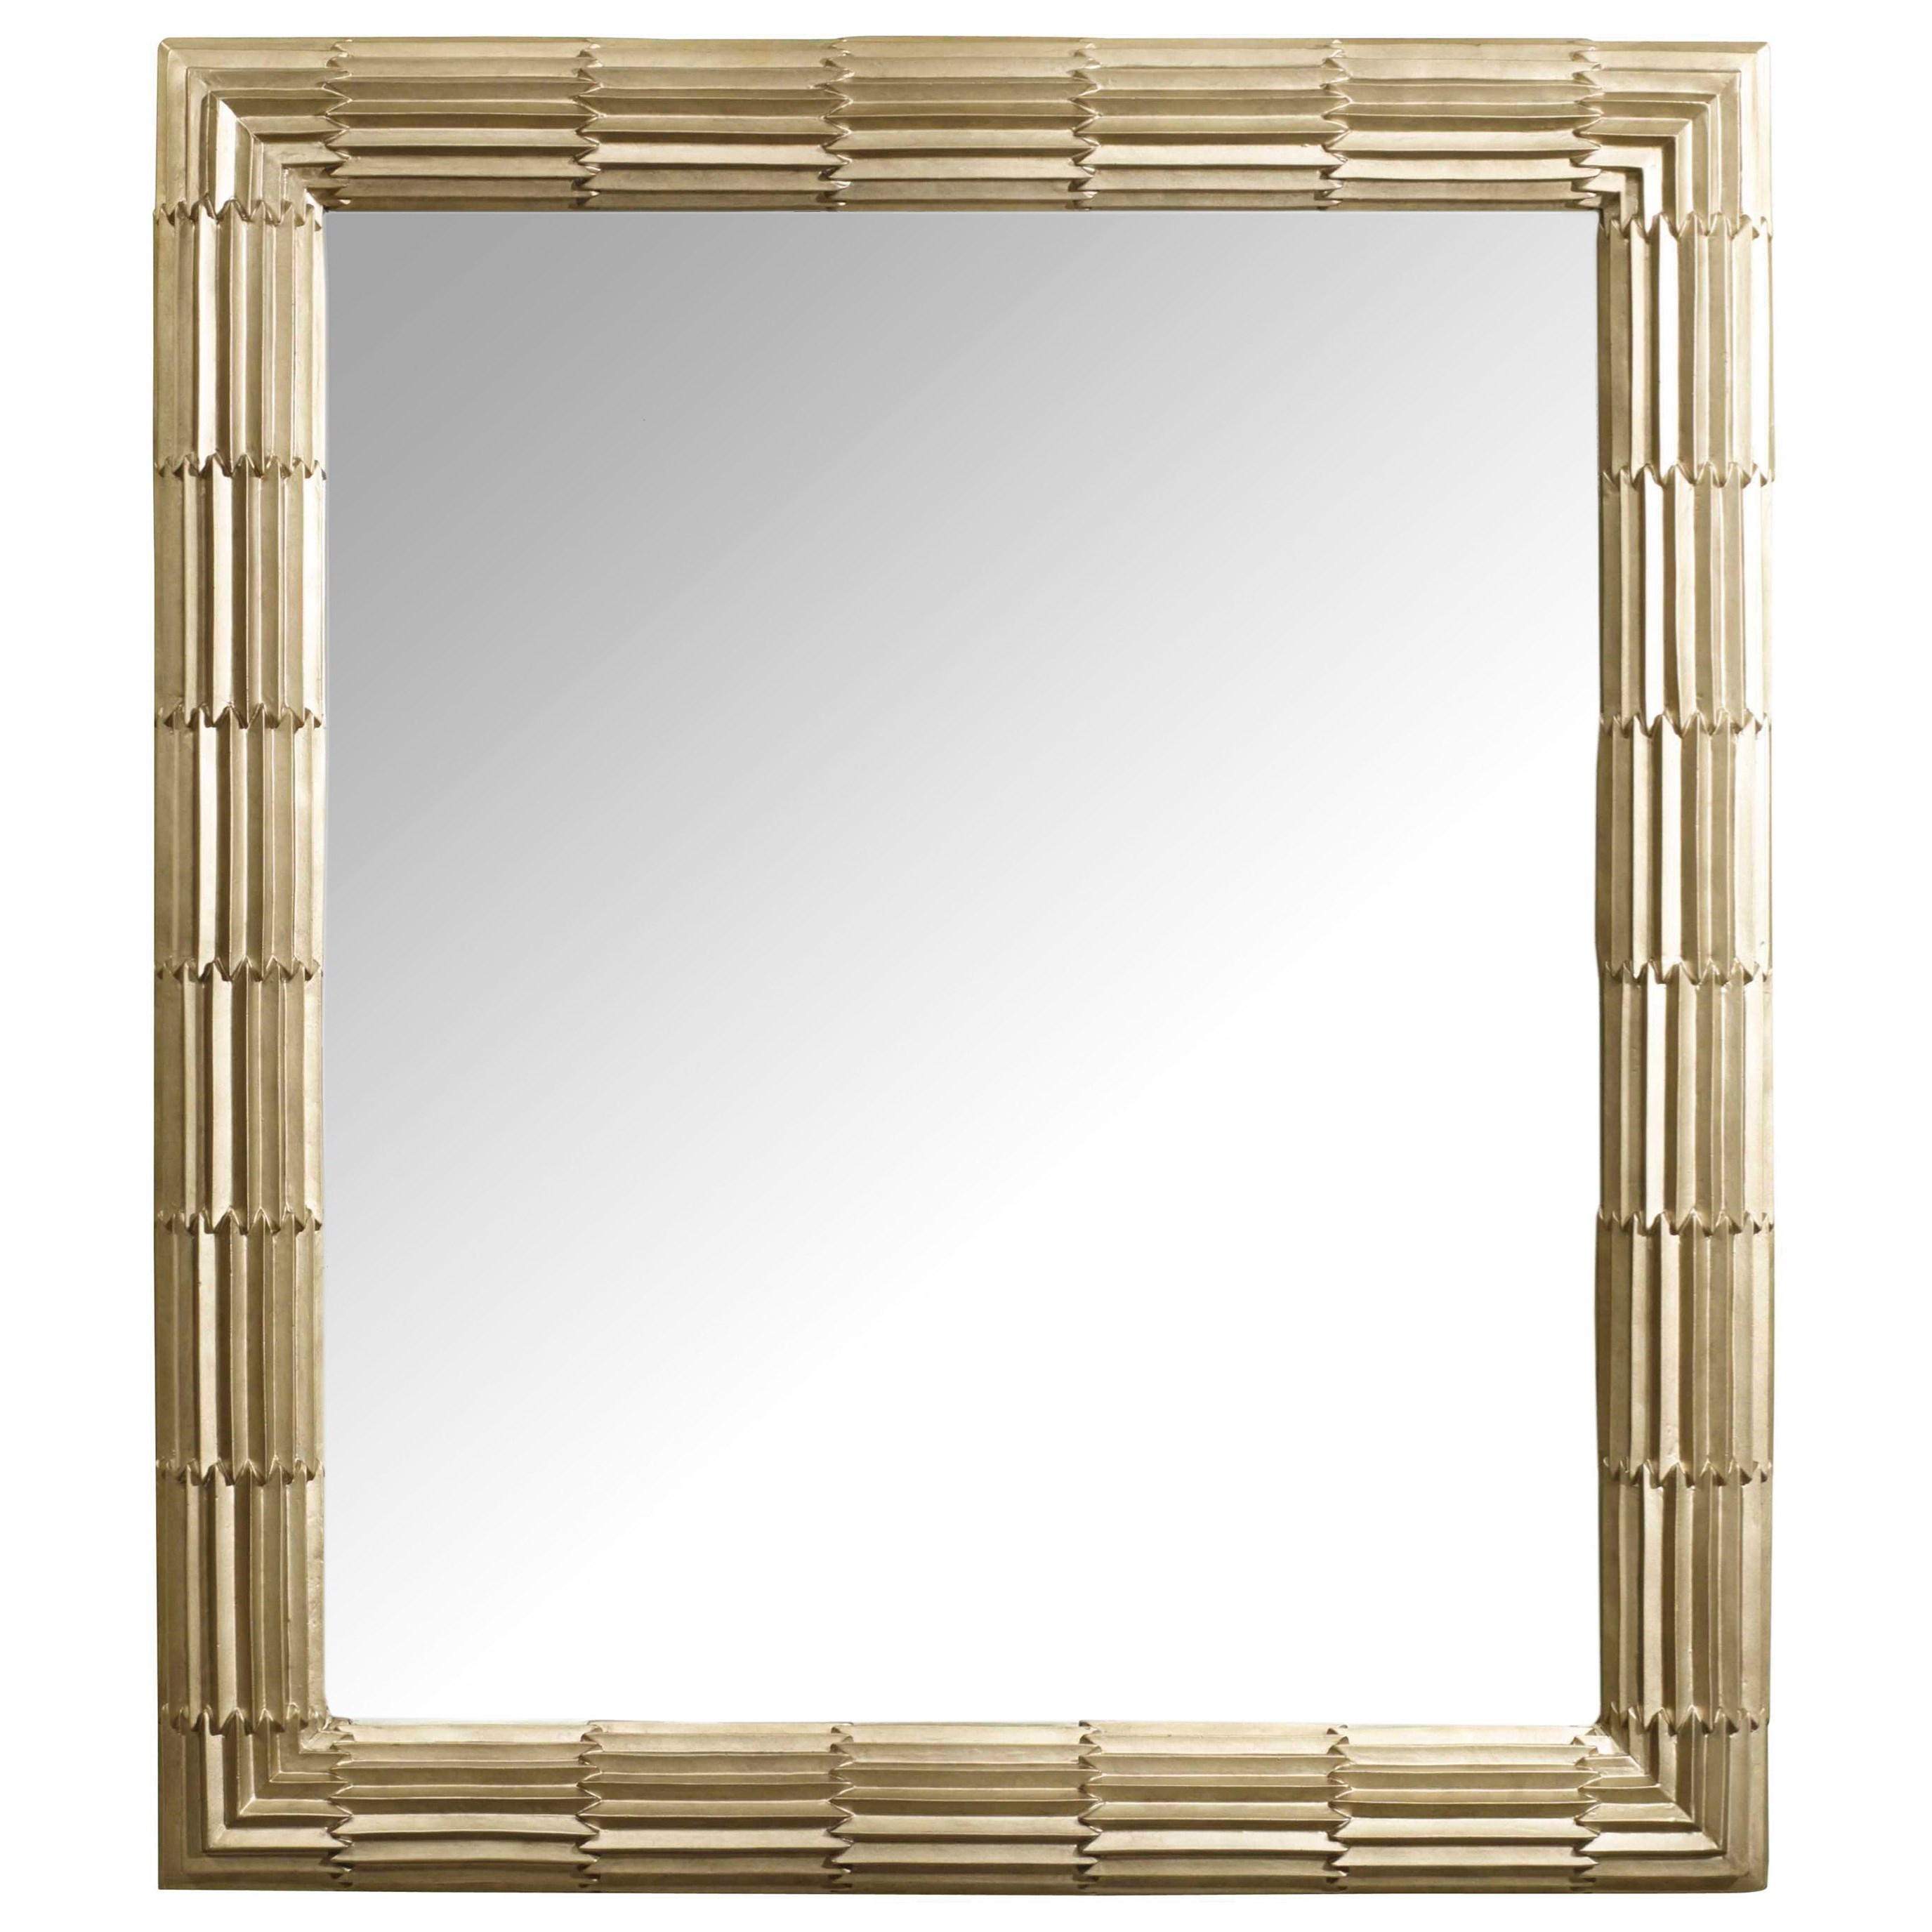 Hooker Furniture Skyline Textured Mirror - Item Number: 5336-90008